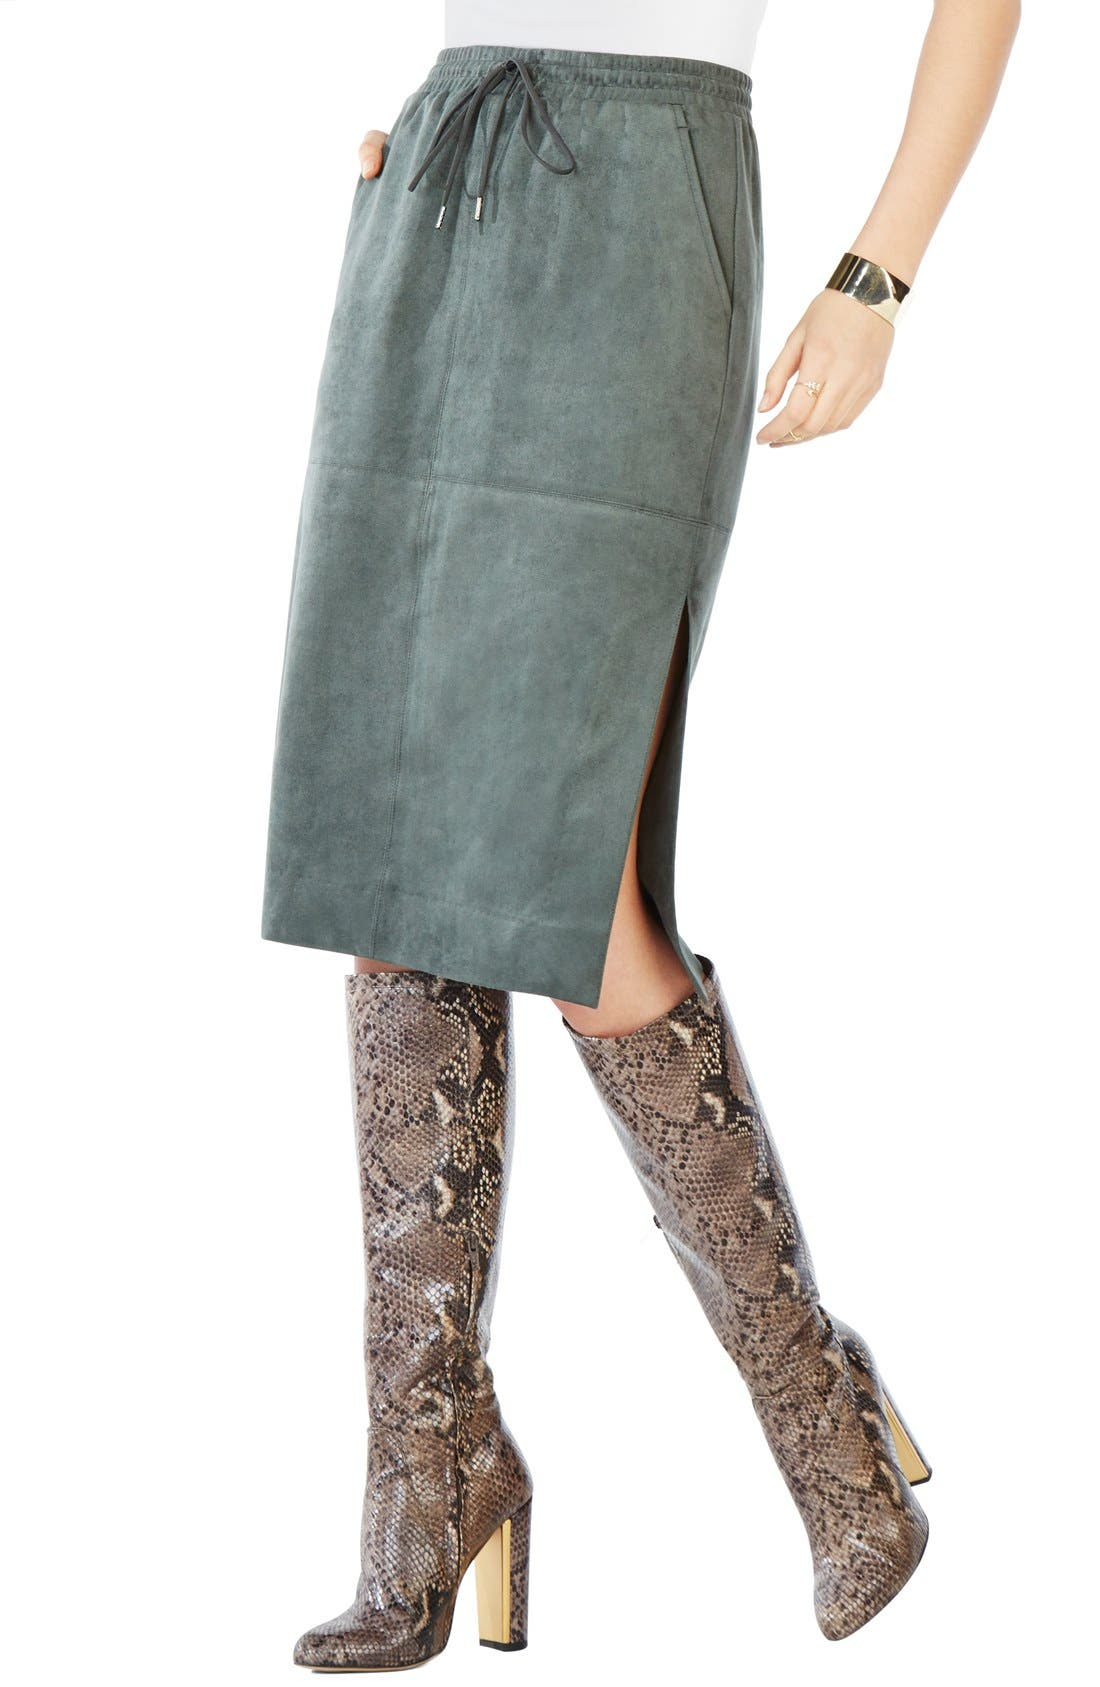 Alternate Image 1 Selected - BCBGMAXAZRIA 'Zandra' Faux Suede Pencil Skirt